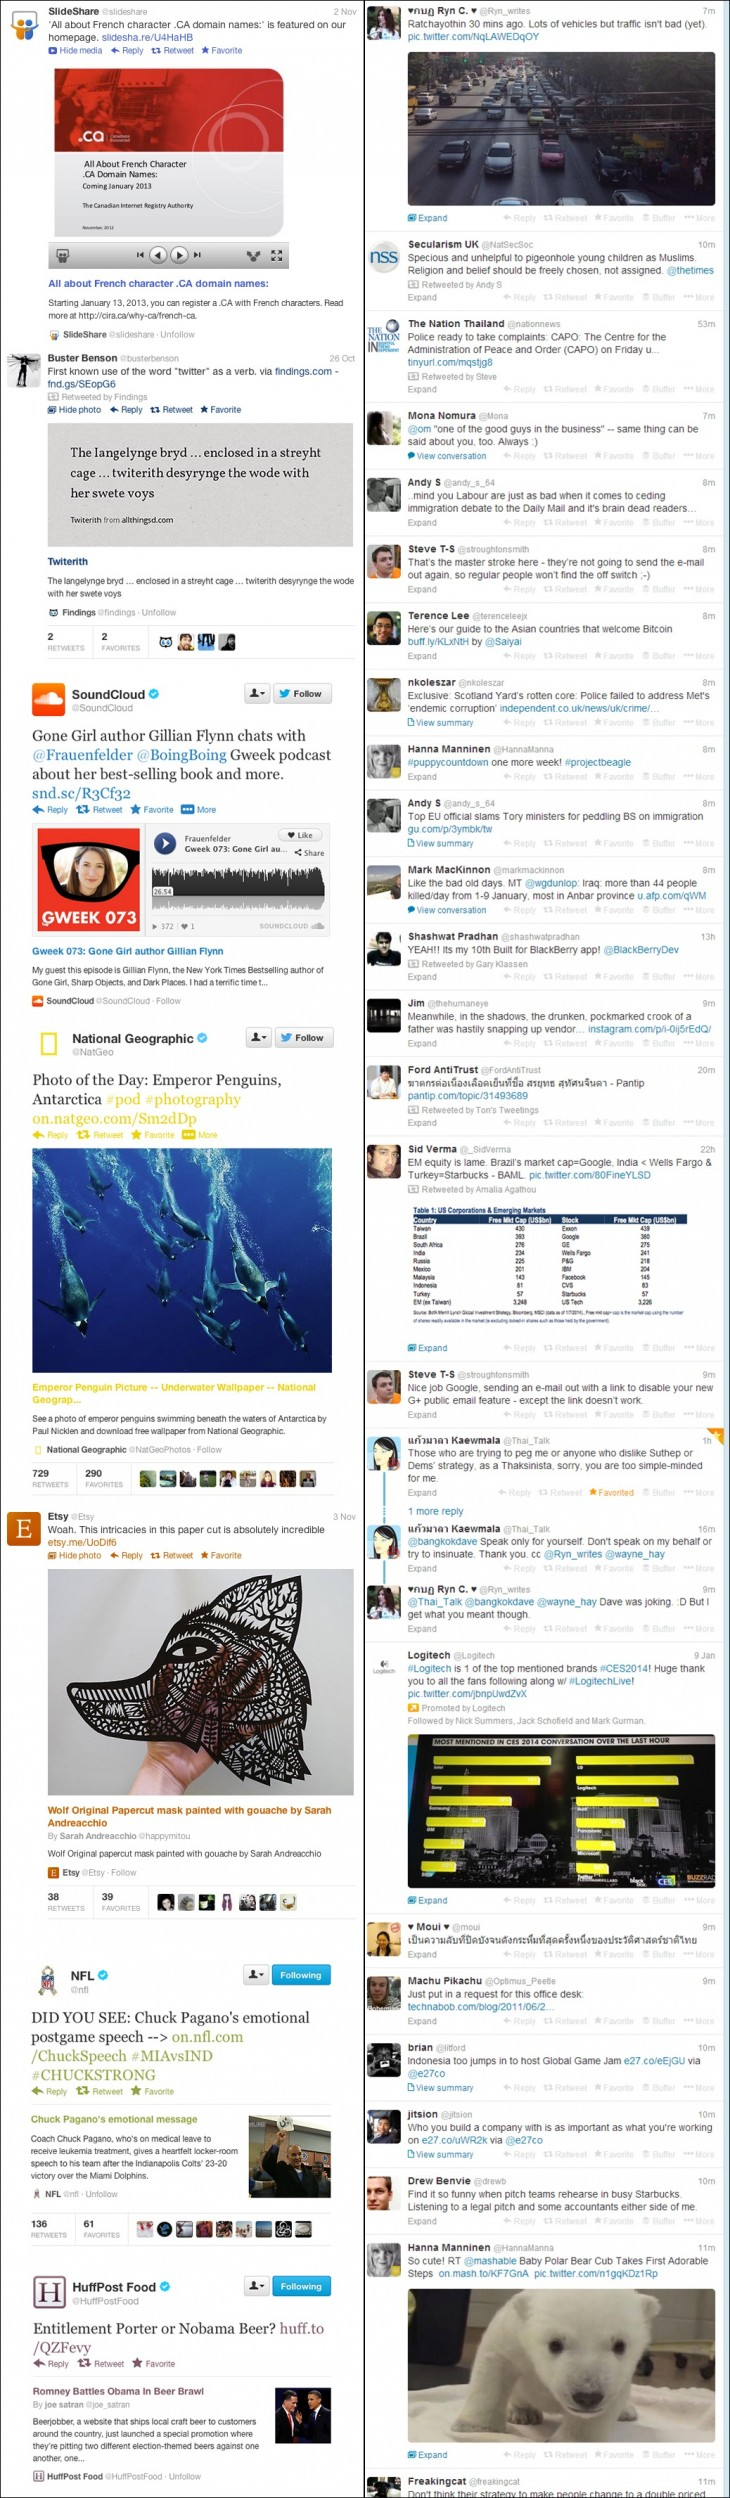 Twitter horz 730x2498 What to expect from Twitter in 2014